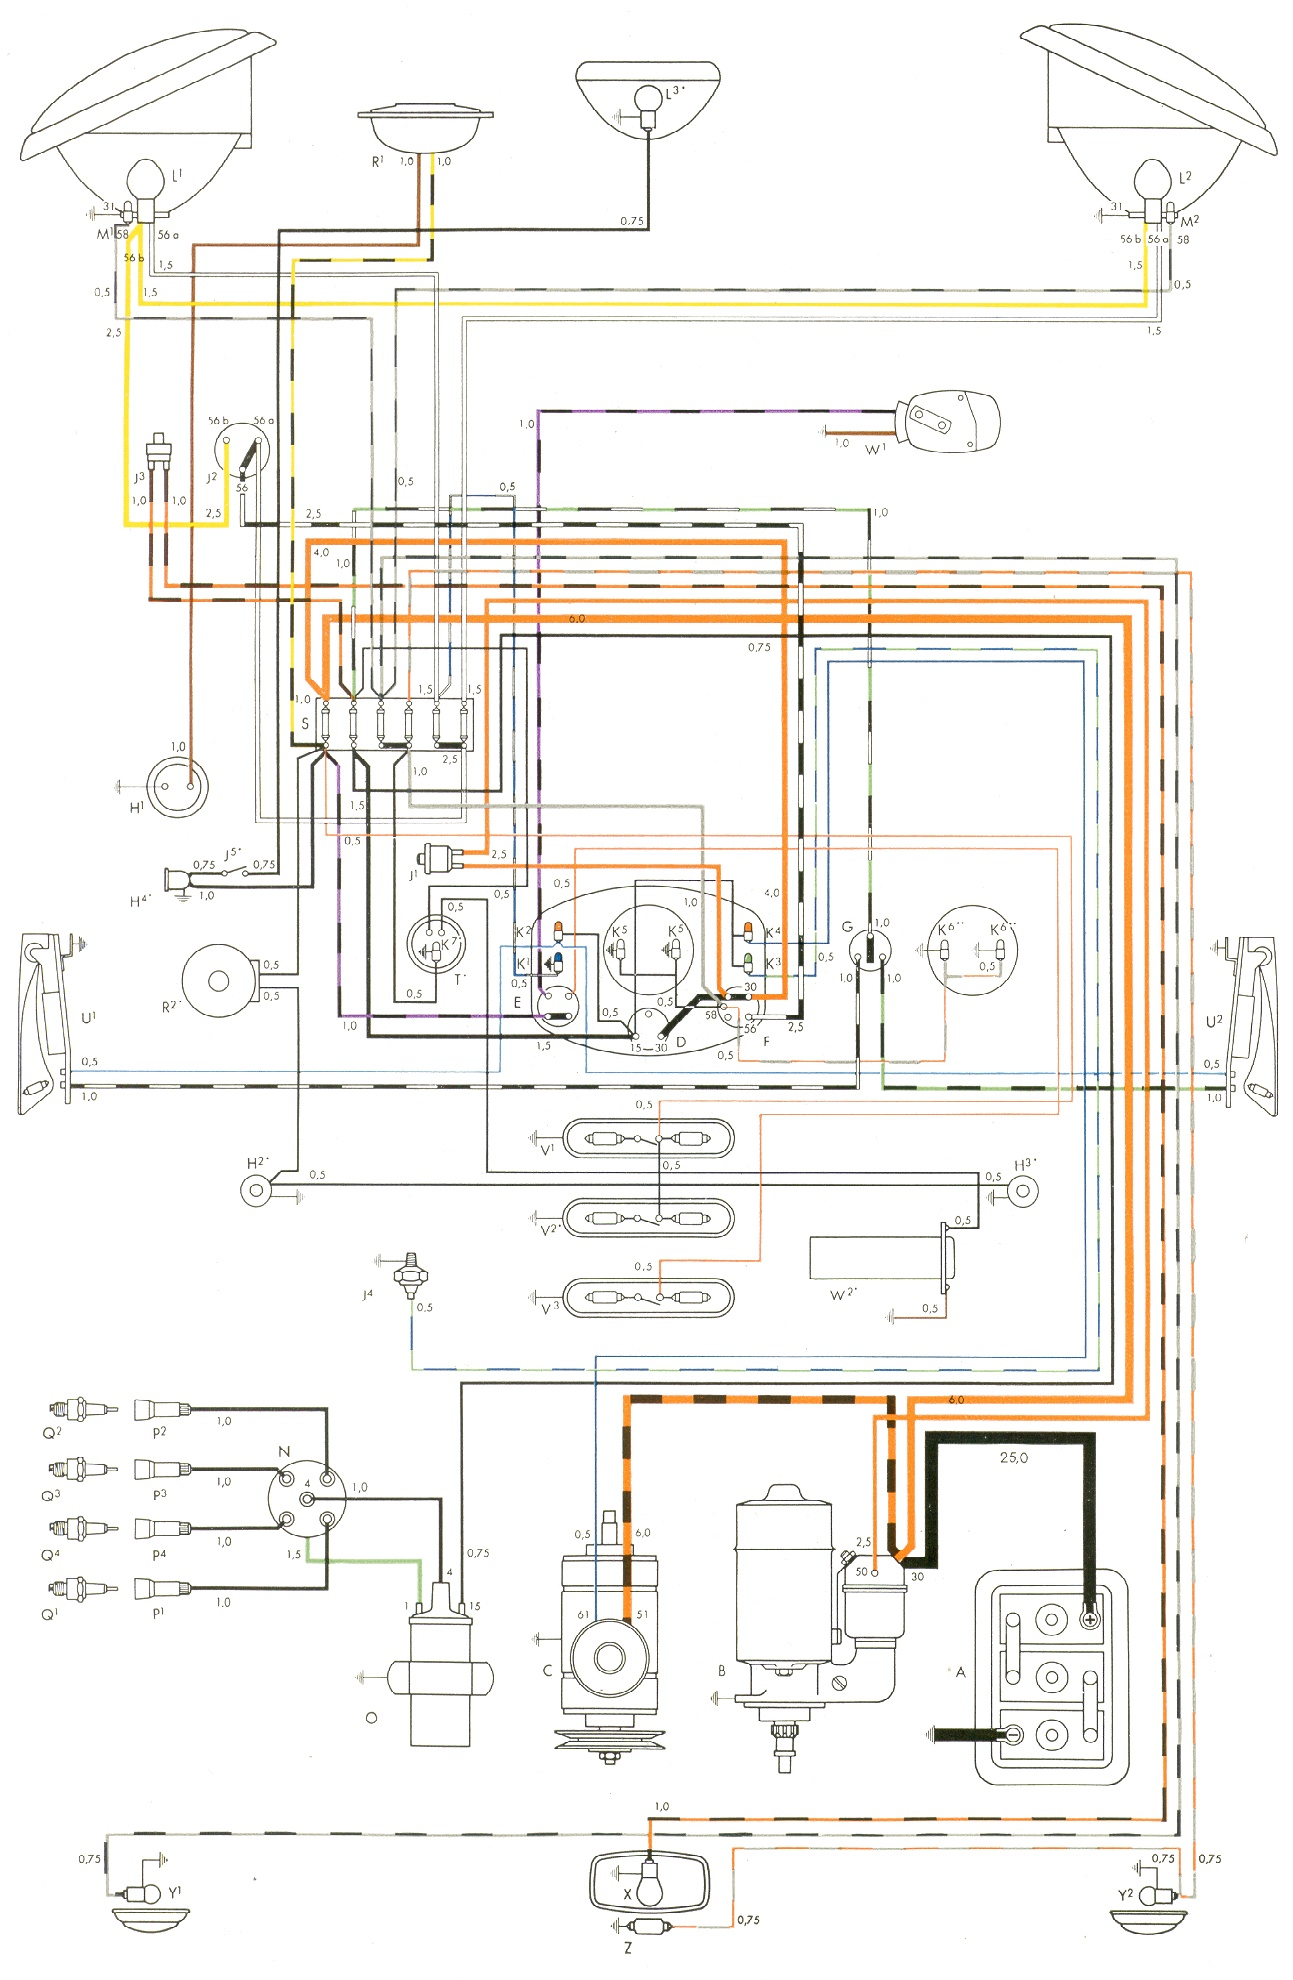 72 vw engine diagram wiring library 73 vw bug wiring-diagram 72 volkswagen wiring diagram list of schematic circuit diagram \\u2022 vw headlight wiring 72 vw